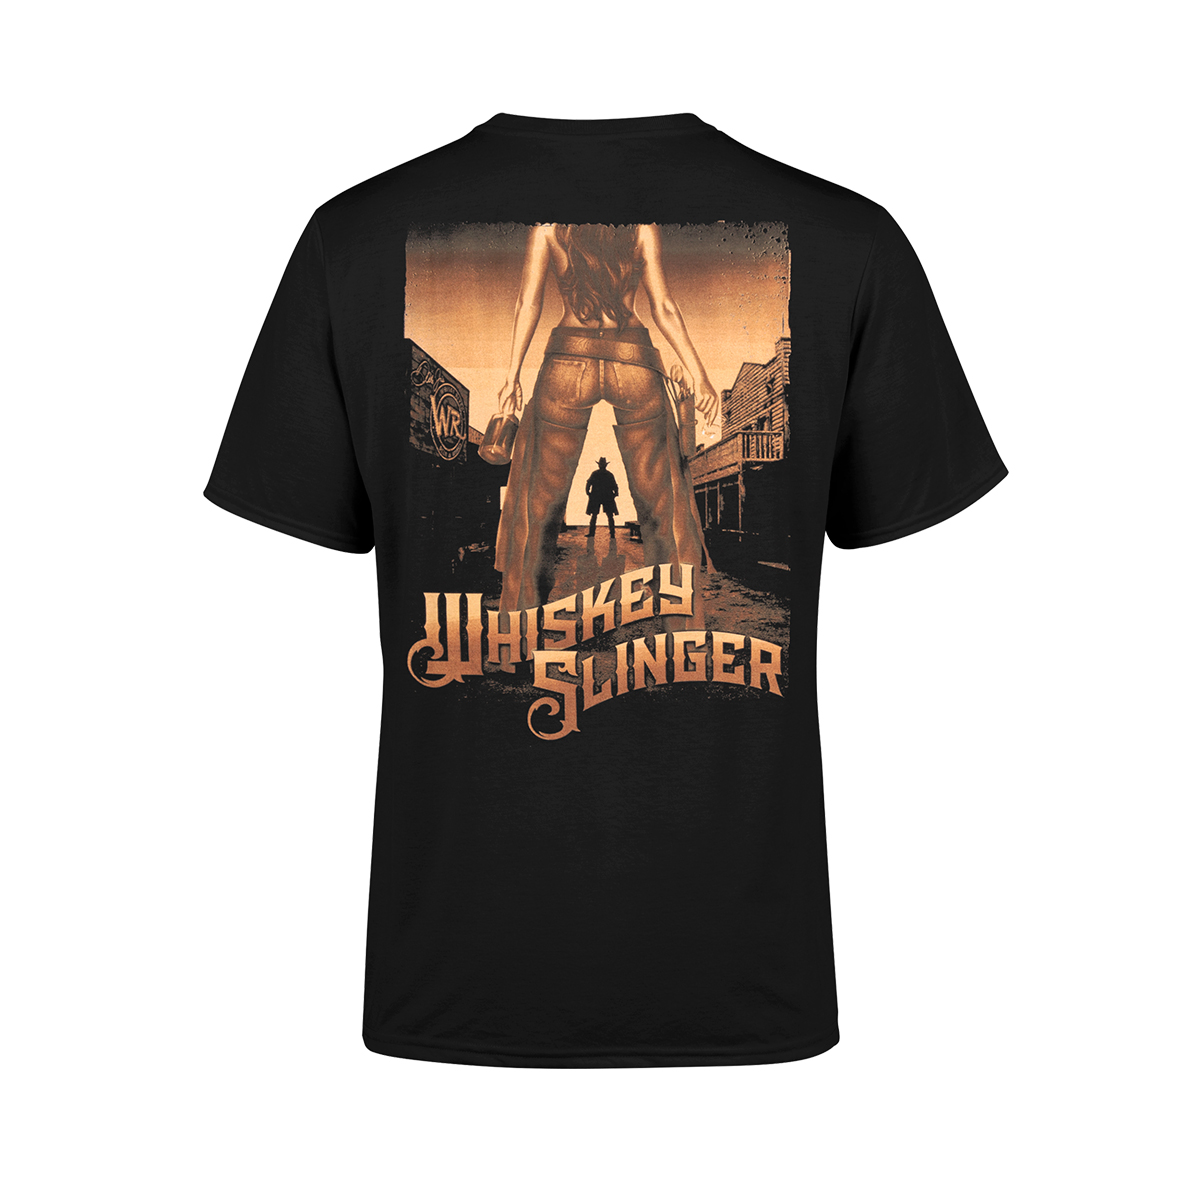 Whiskey Slinger Black T-shirt